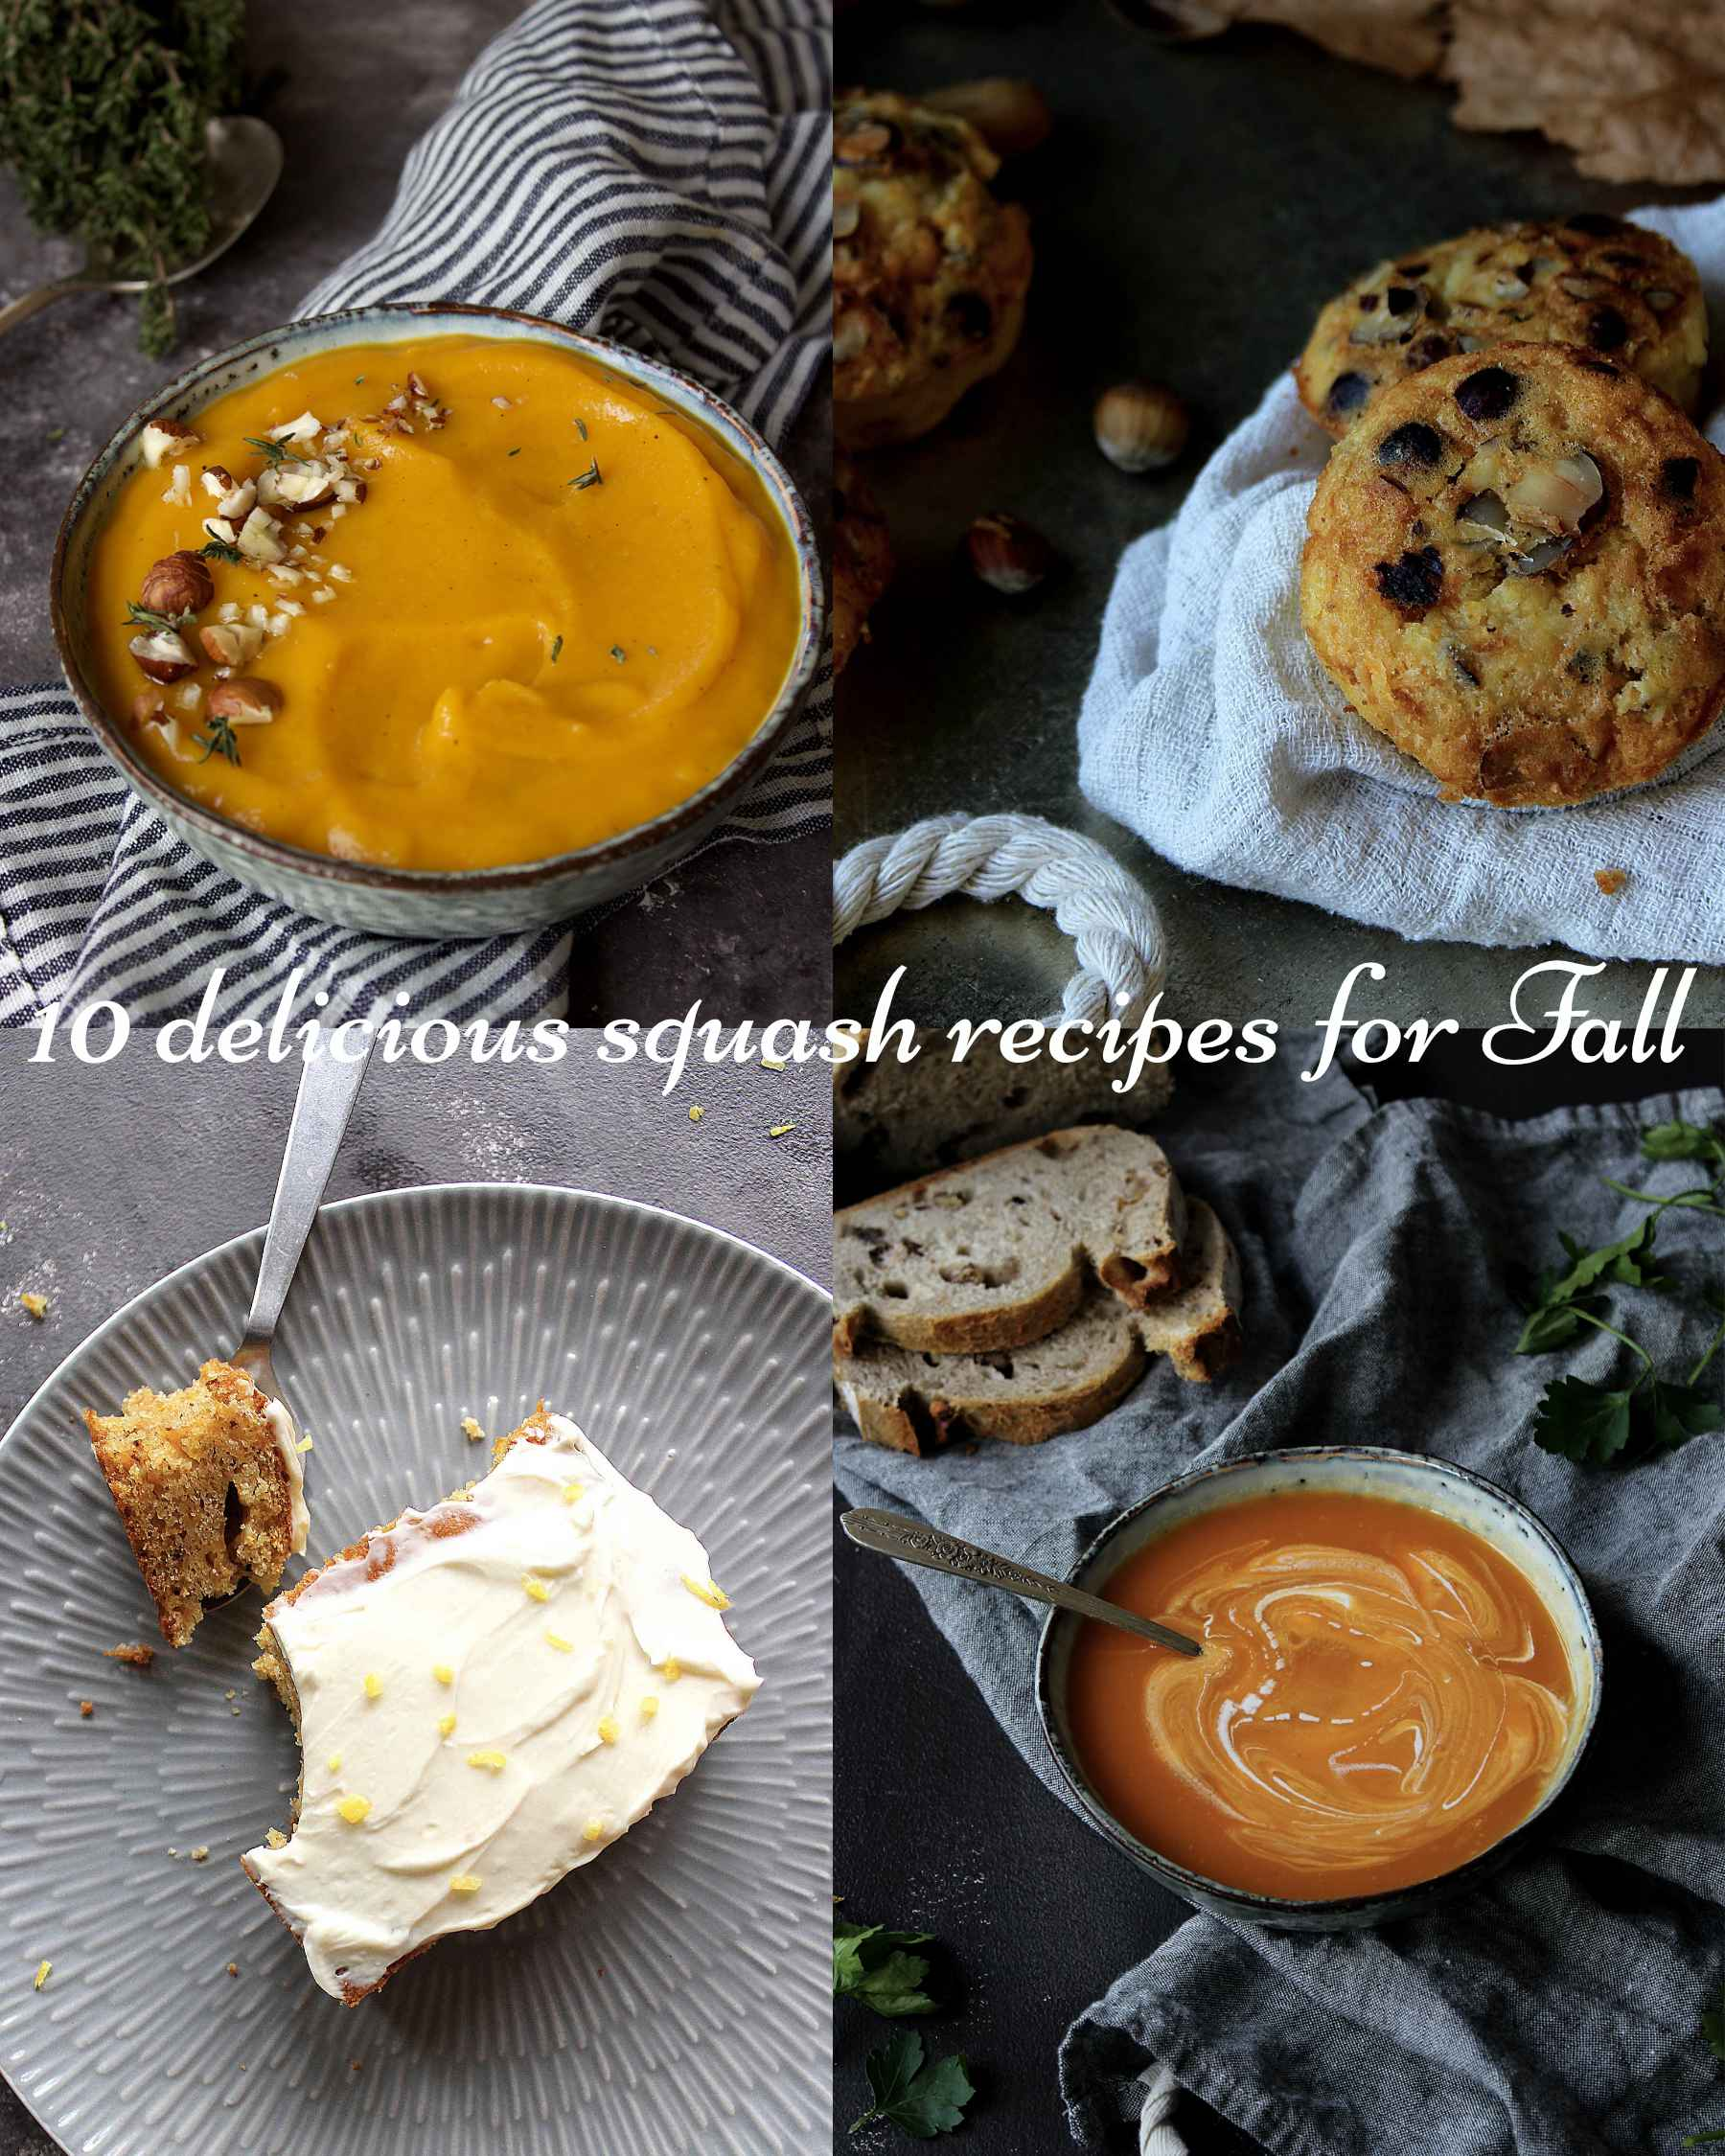 10 delicious squash recipes to try this Fall